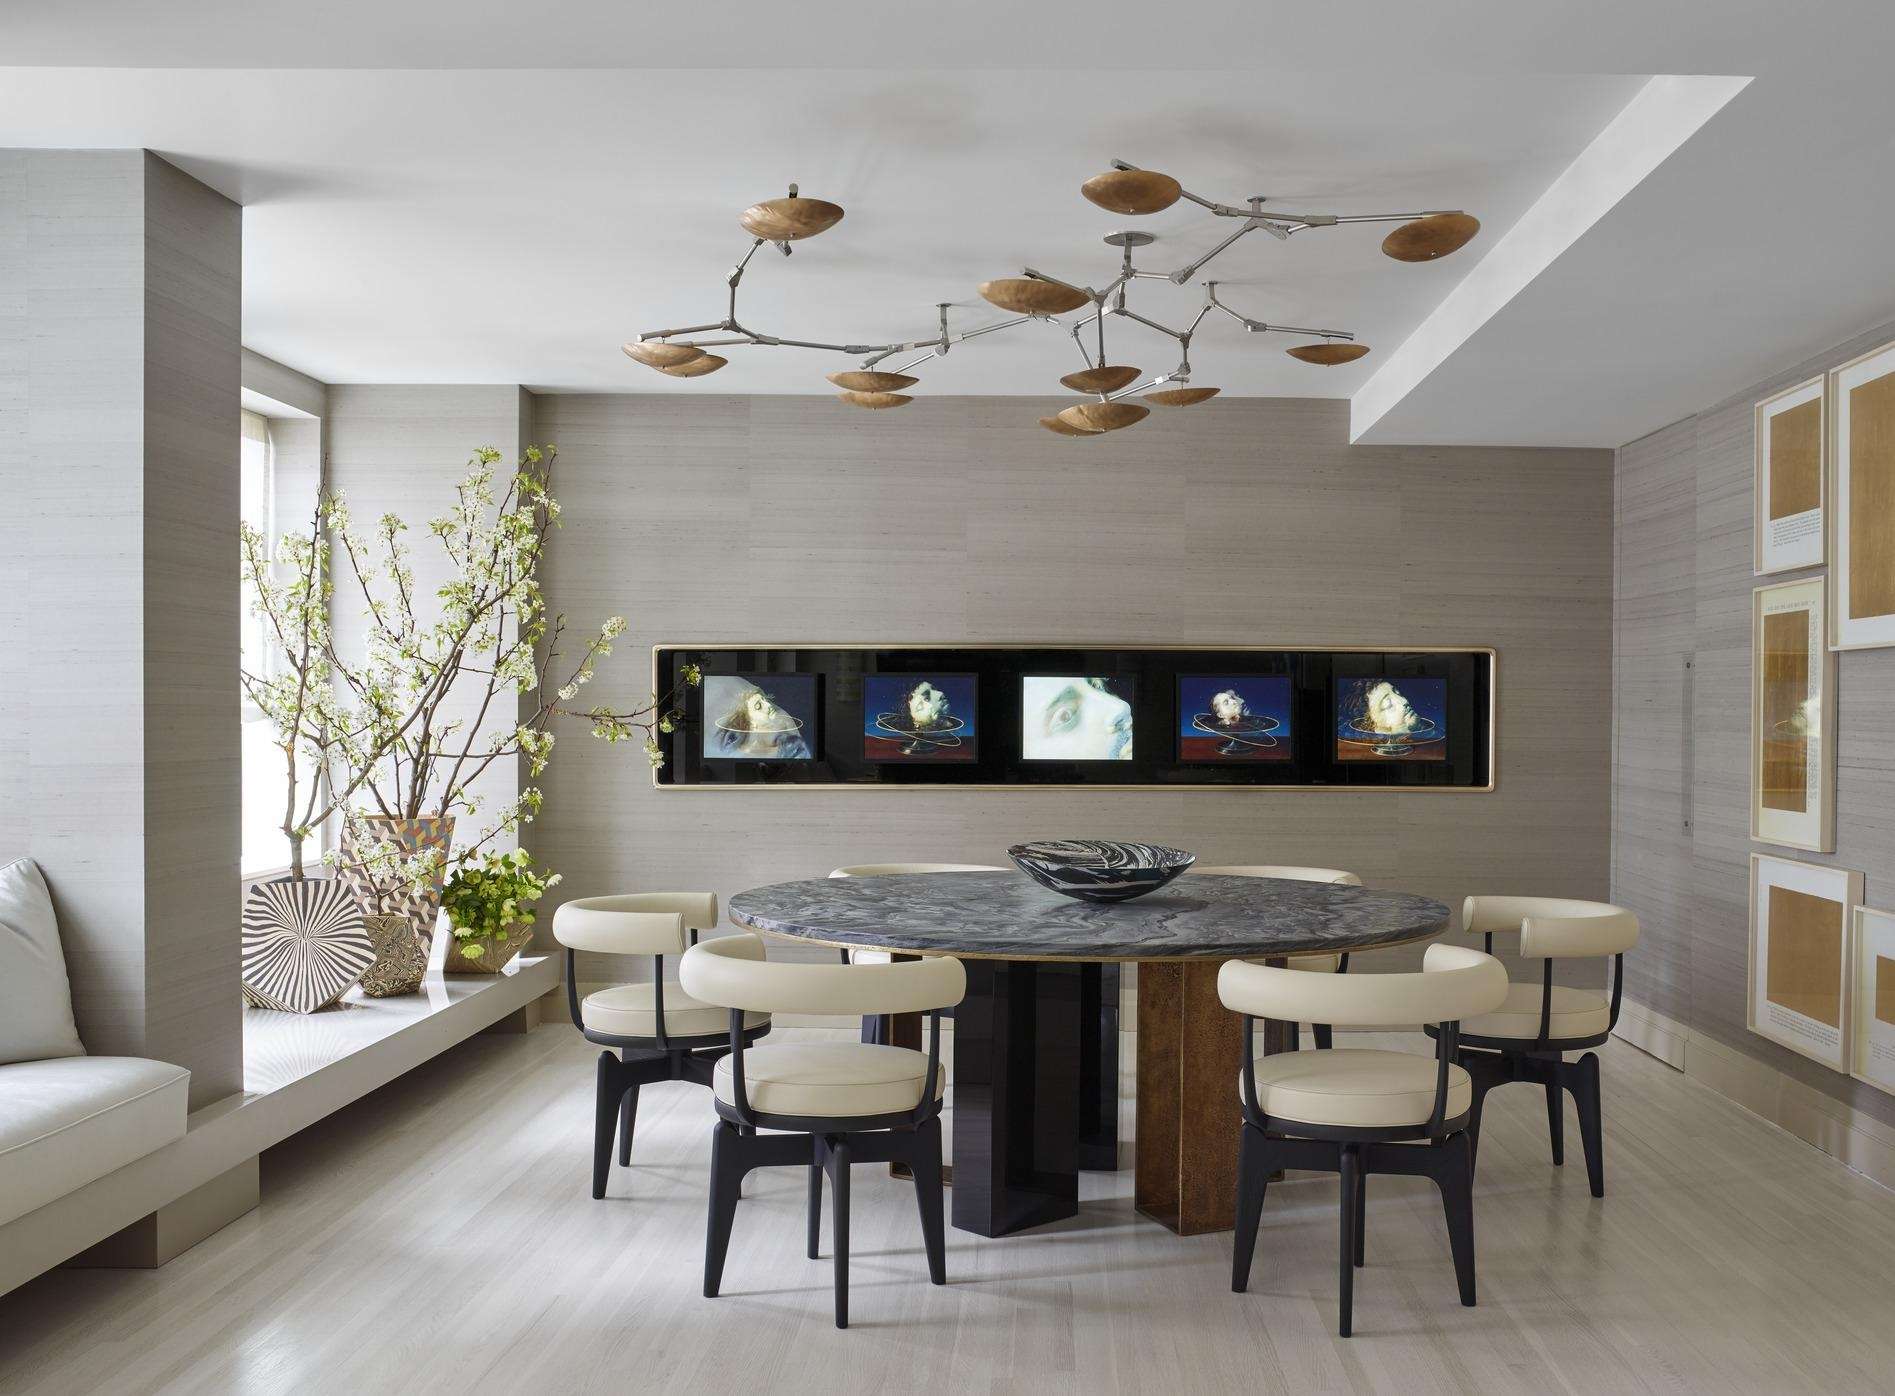 25 Modern Dining Room Decorating Ideas - Contemporary Dining Room within Modern Wall Art For Dining Room